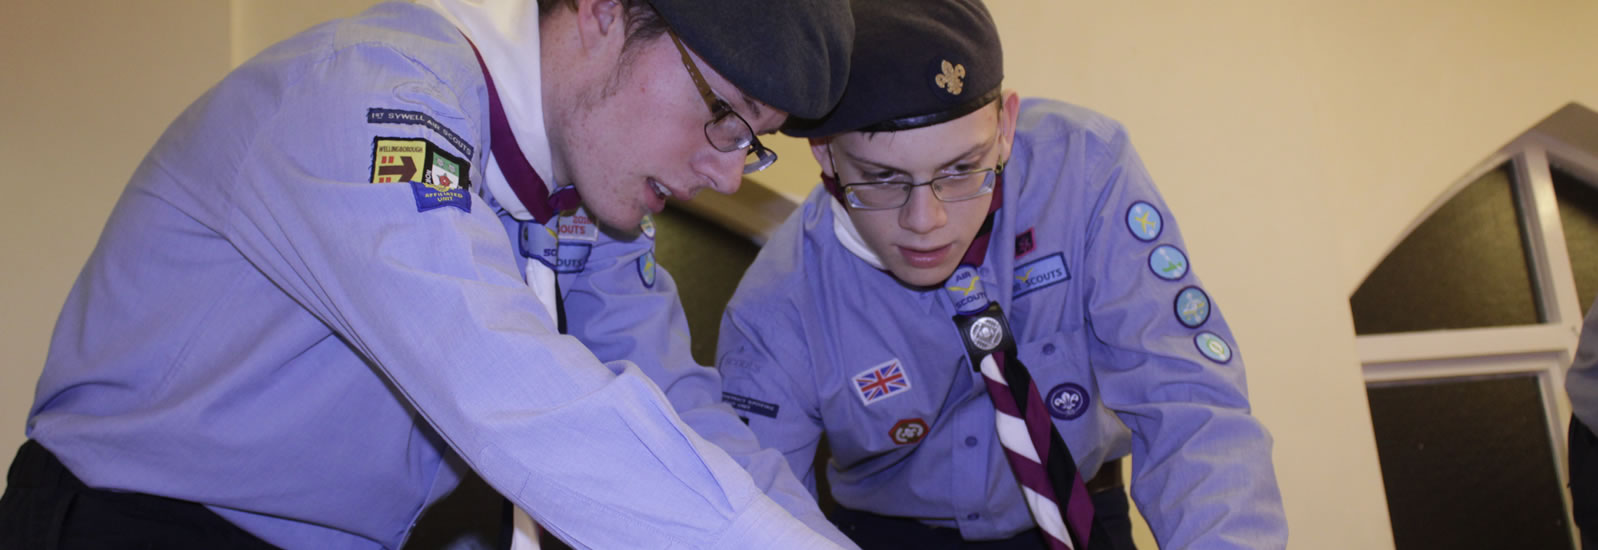 Spitfire Air Explorers Working on a Project